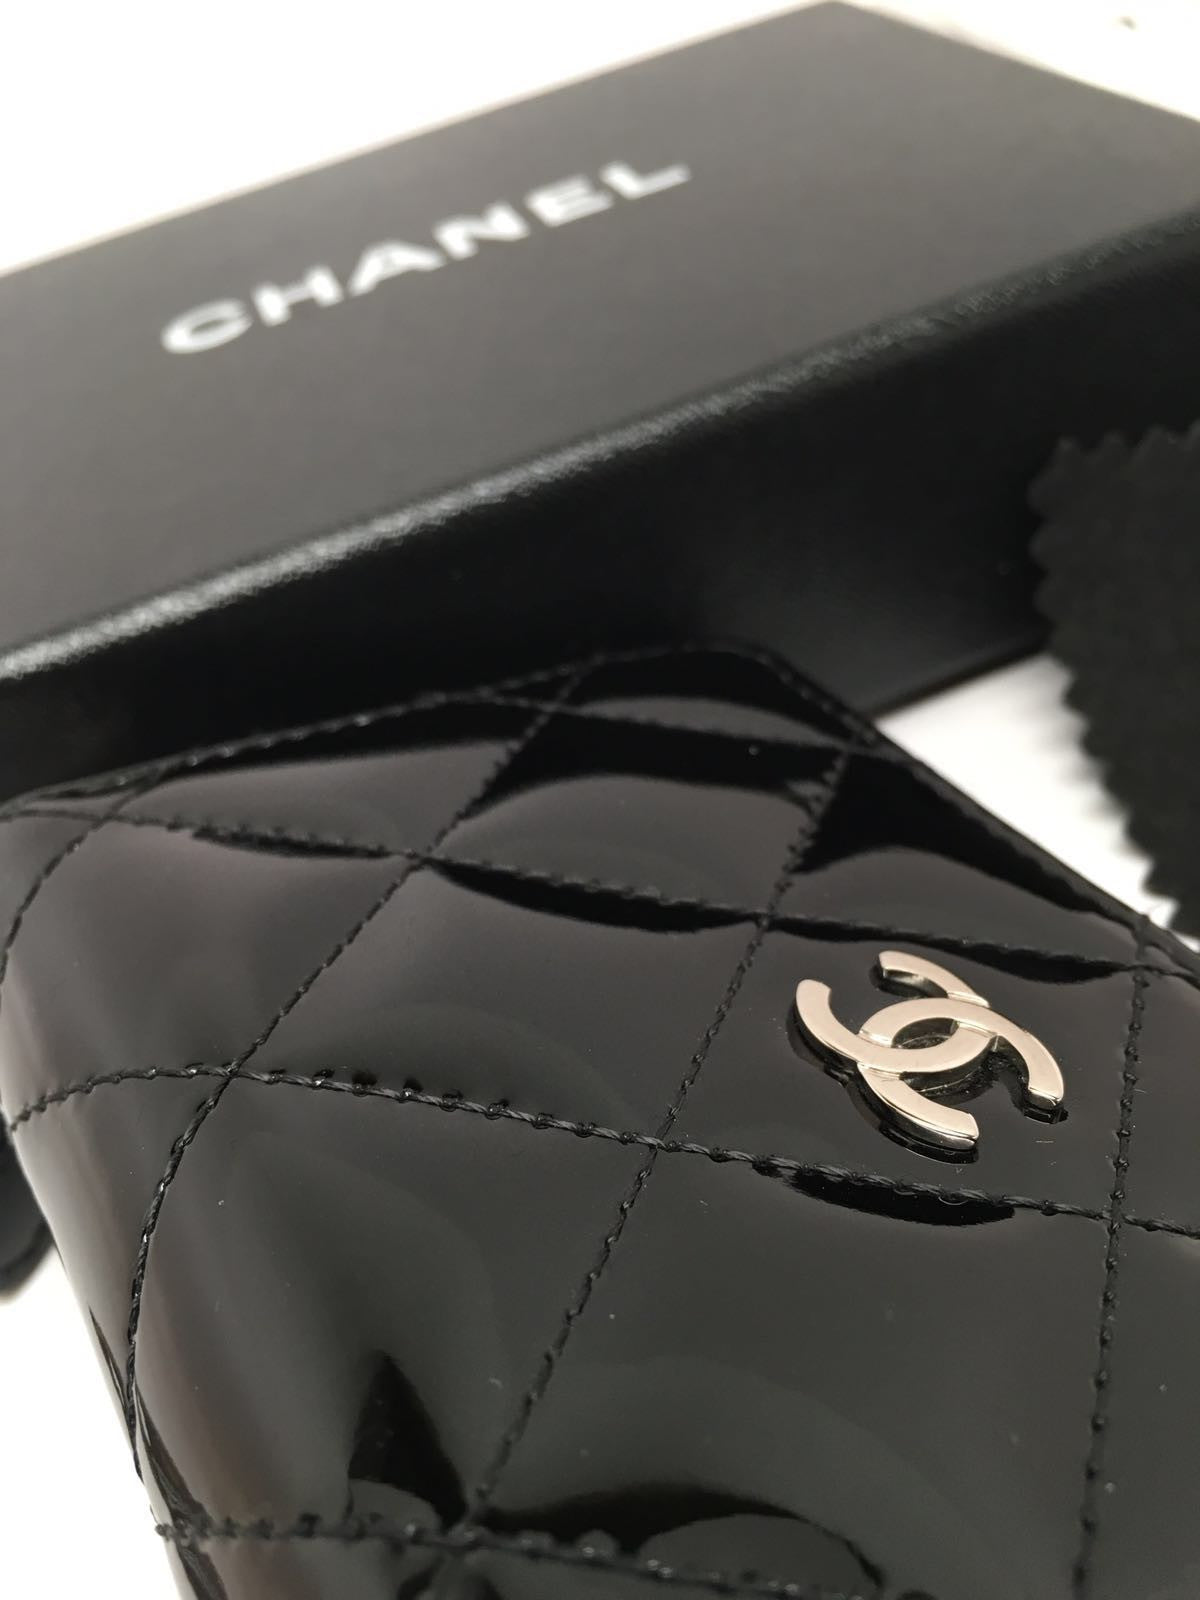 CHANEL BLACK PATENT LEATHER QUILTED ZIP AROUND COIN PURSE